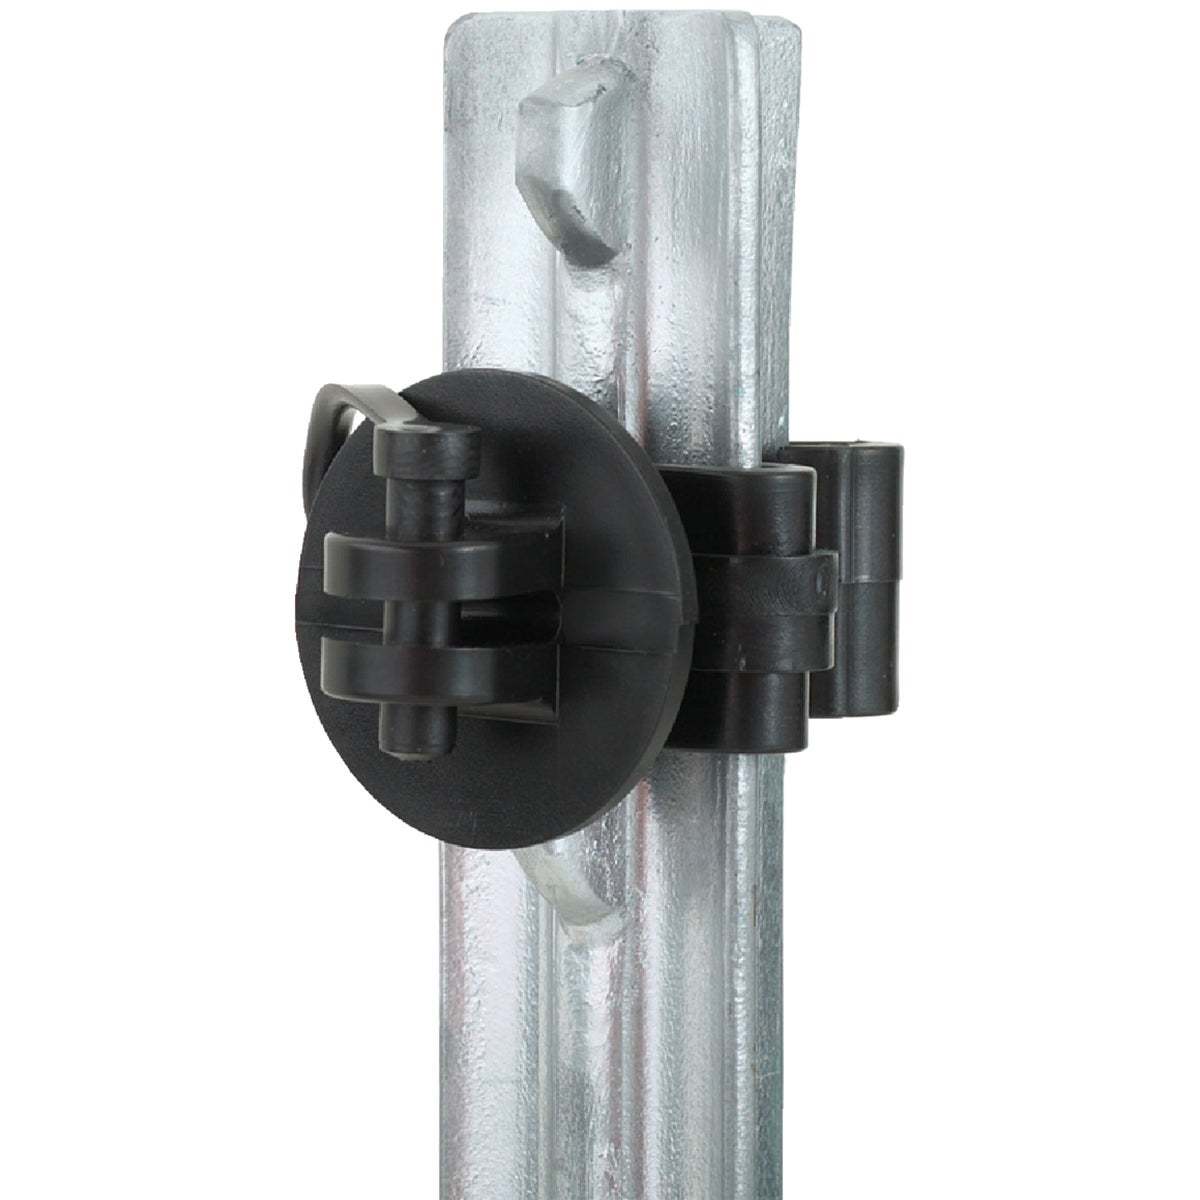 25PC BLK PNLCK INSULATOR - 2550-25 by Dare Products Inc